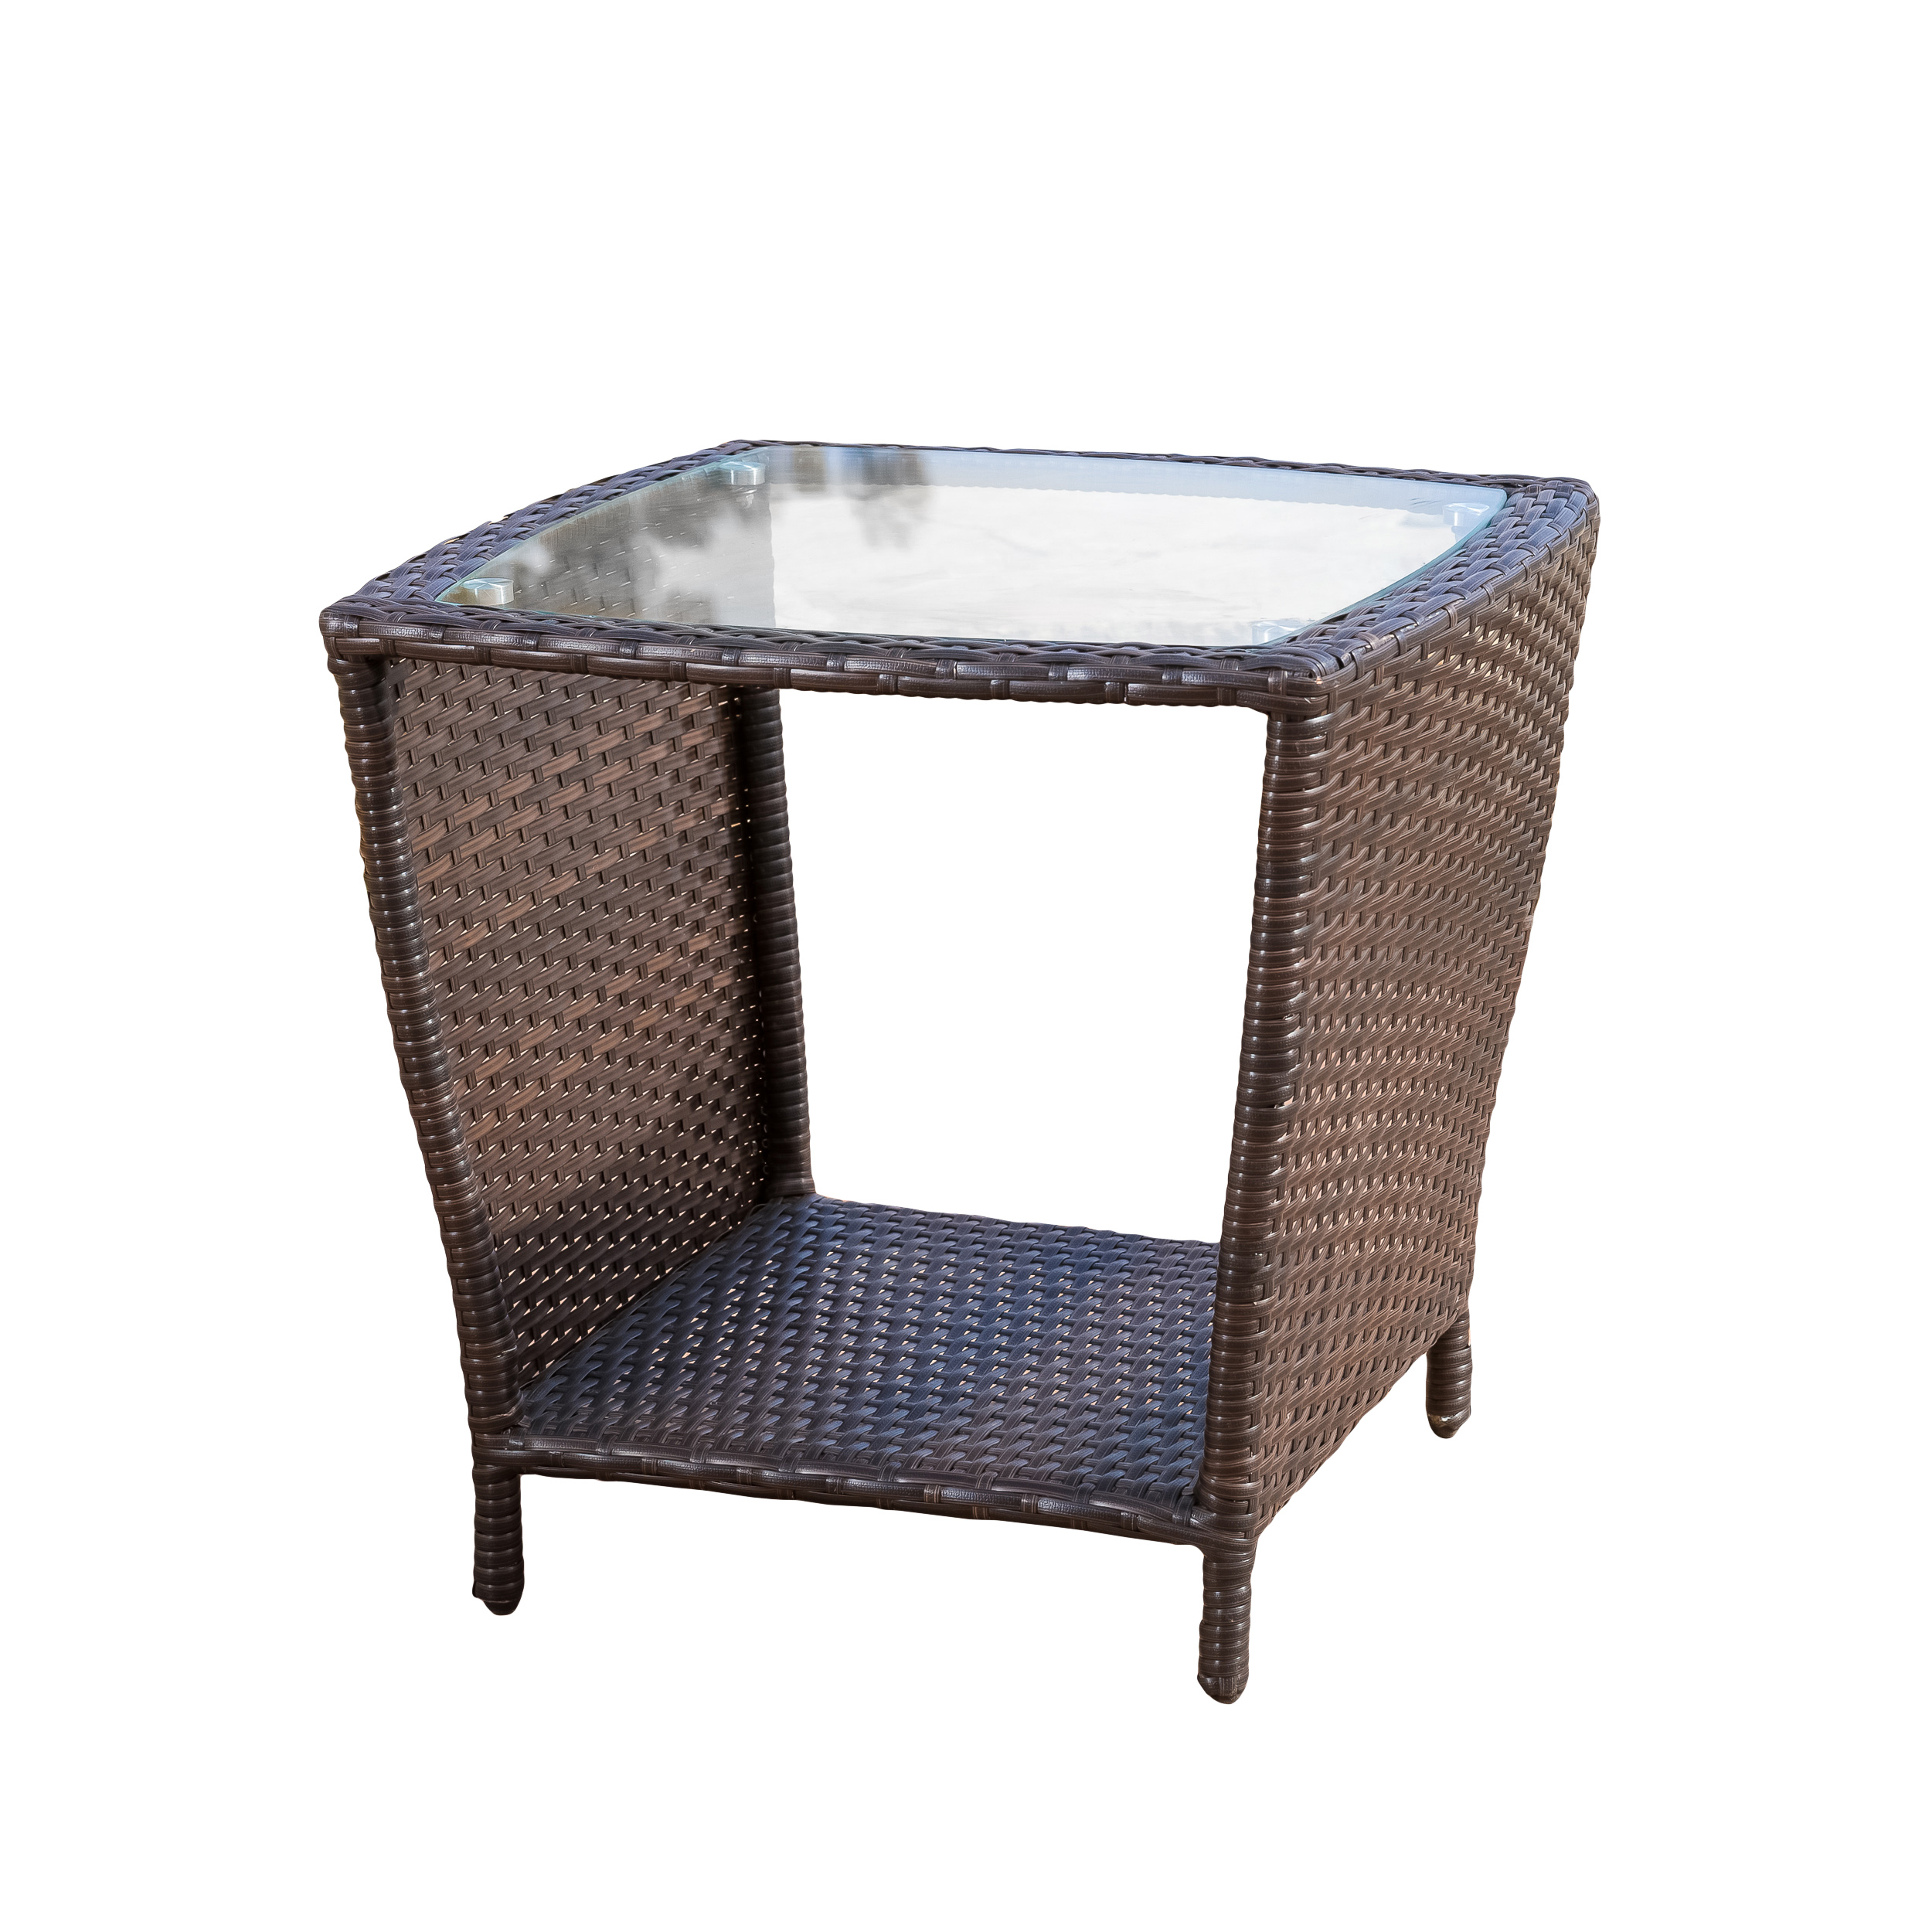 Keenan Outdoor Multibrown Wicker Side Table with Glass Top by GDF Studio